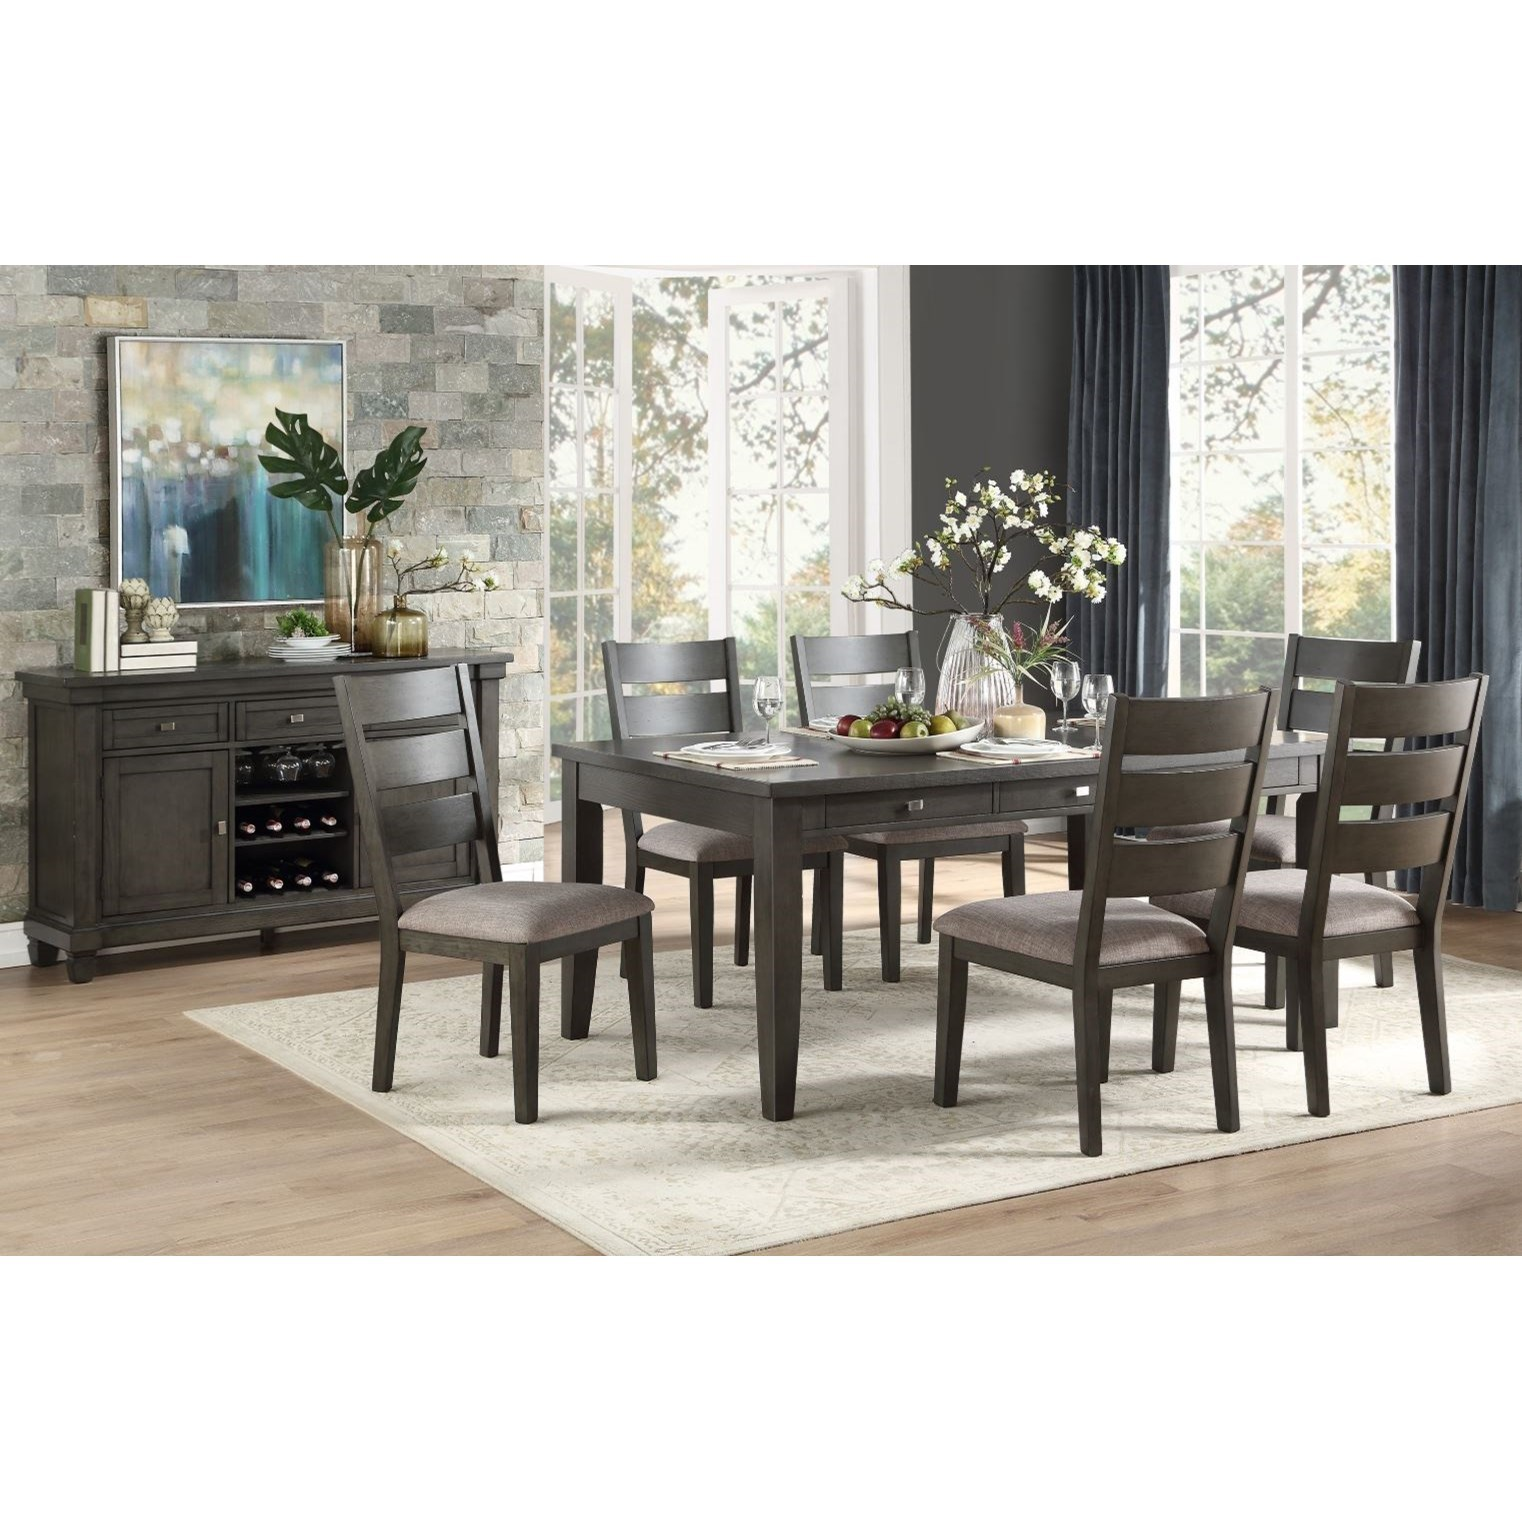 Baresford Formal Dining Room Group by Homelegance at Rife's Home Furniture